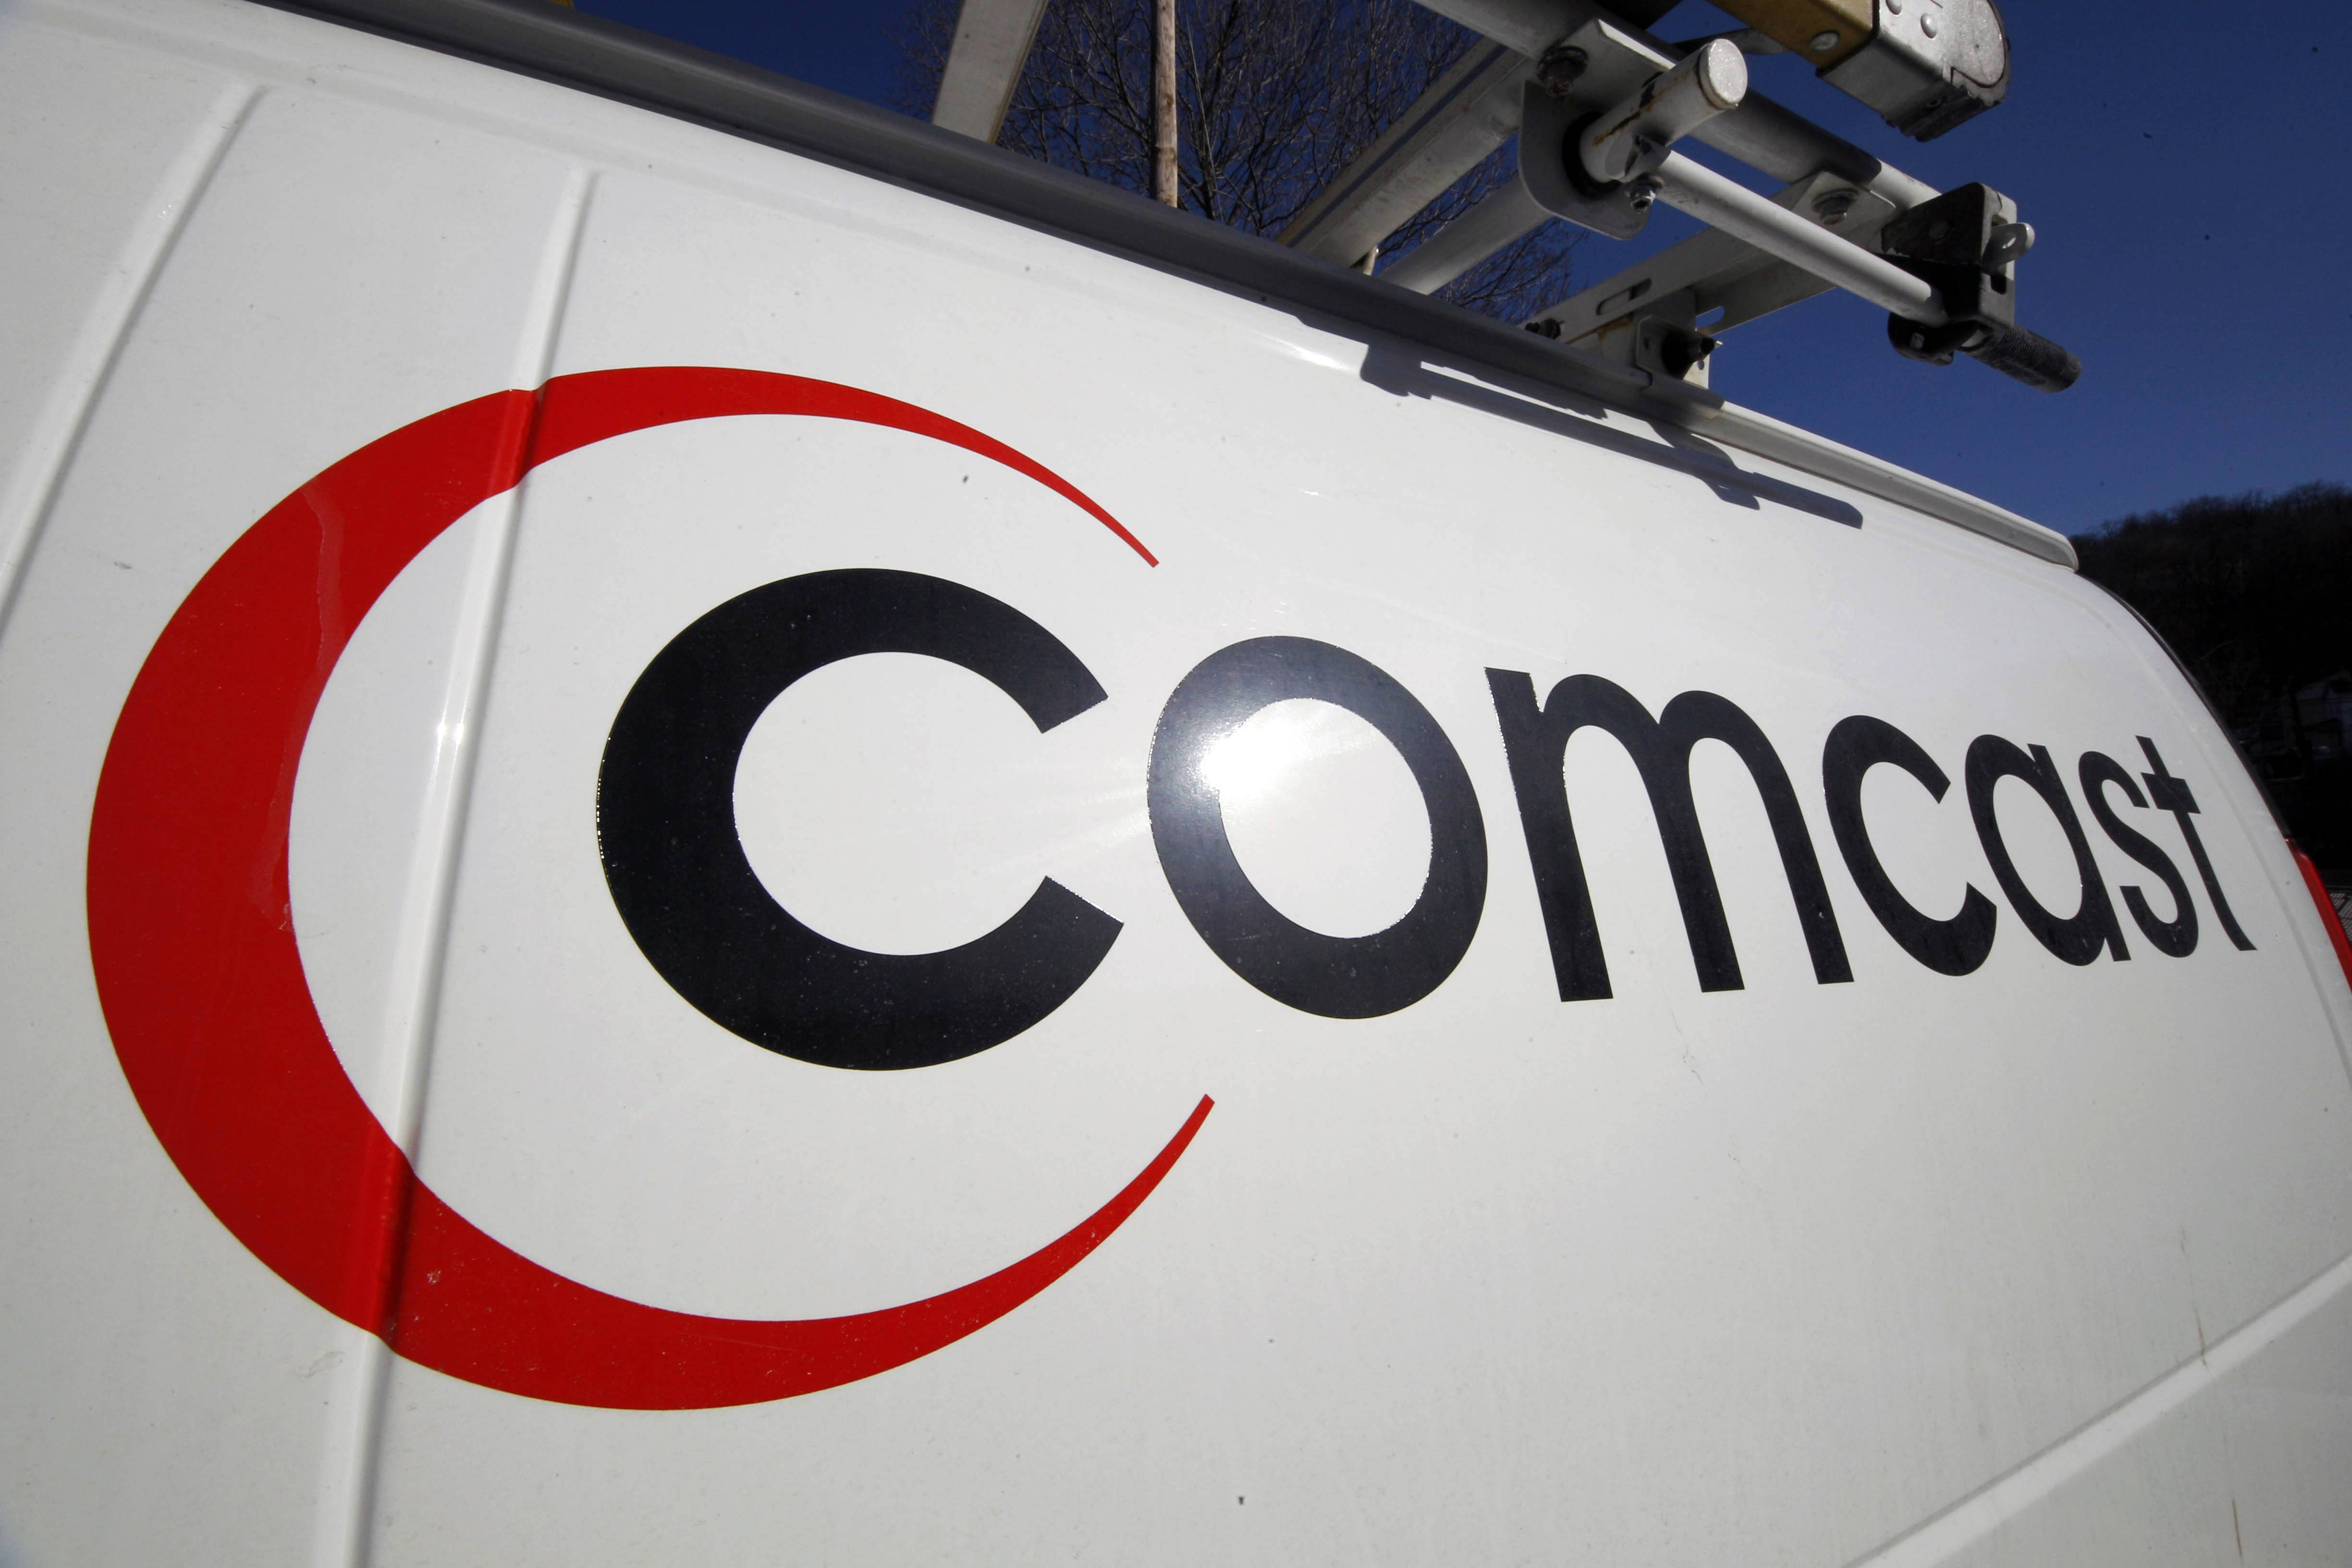 Comcast plans to sell some cable systems to competitor Charter Communications Inc. to help Comcast's acquisition of Time Warner Cable clear clear regulatory hurdles.